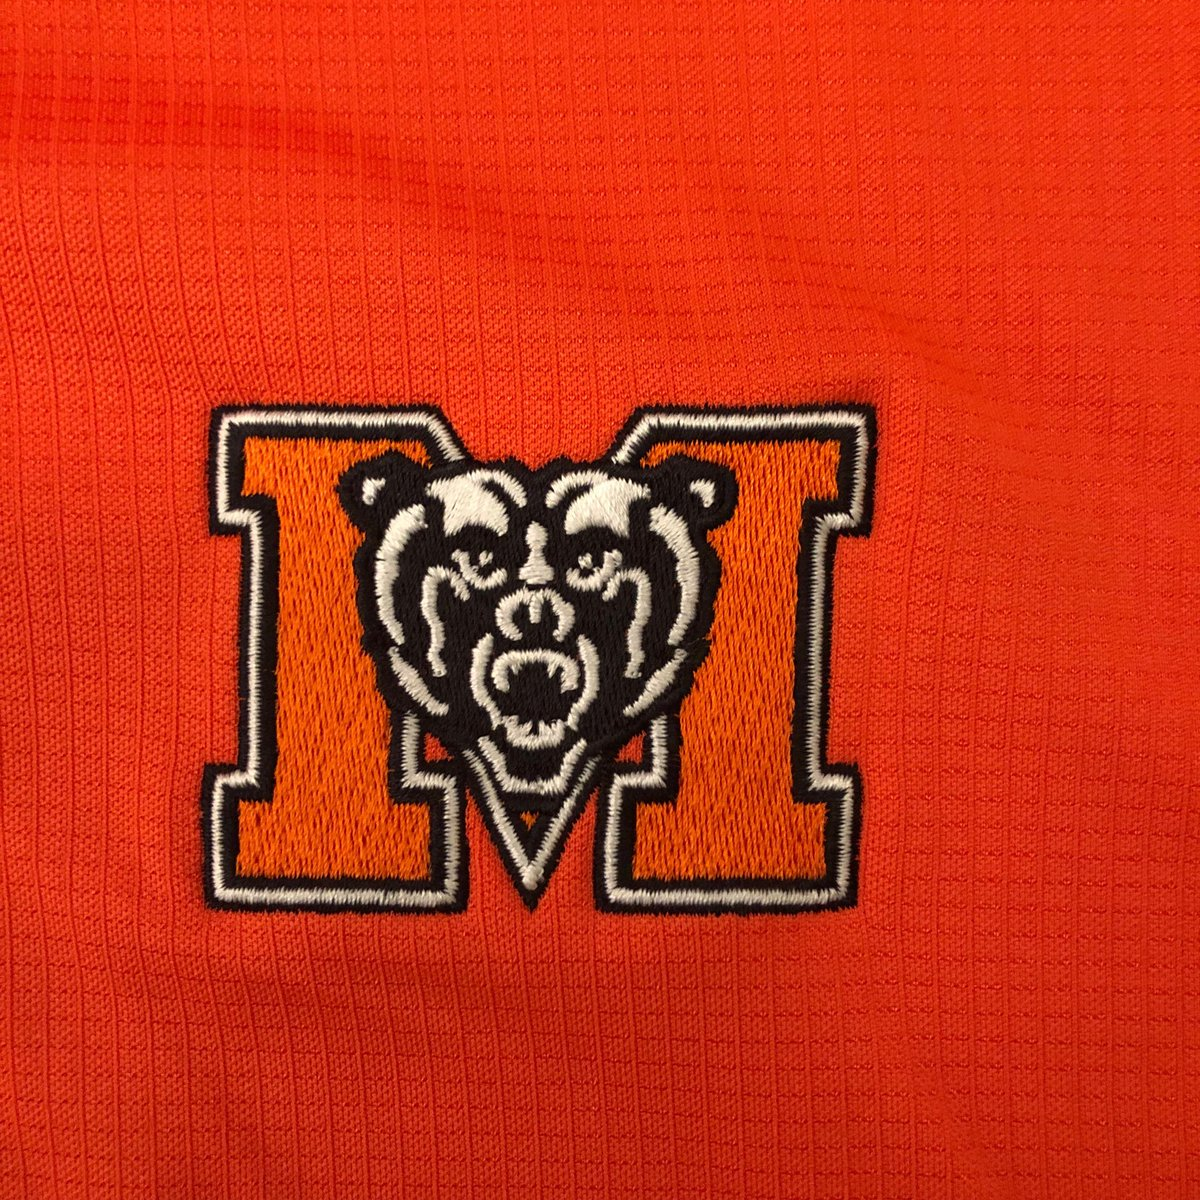 My first official recruiting period for Mercer University is in true books. It's a great feeling to be a 🐻!!  Exciting times coming to Macon. #roartogether #letsgooo